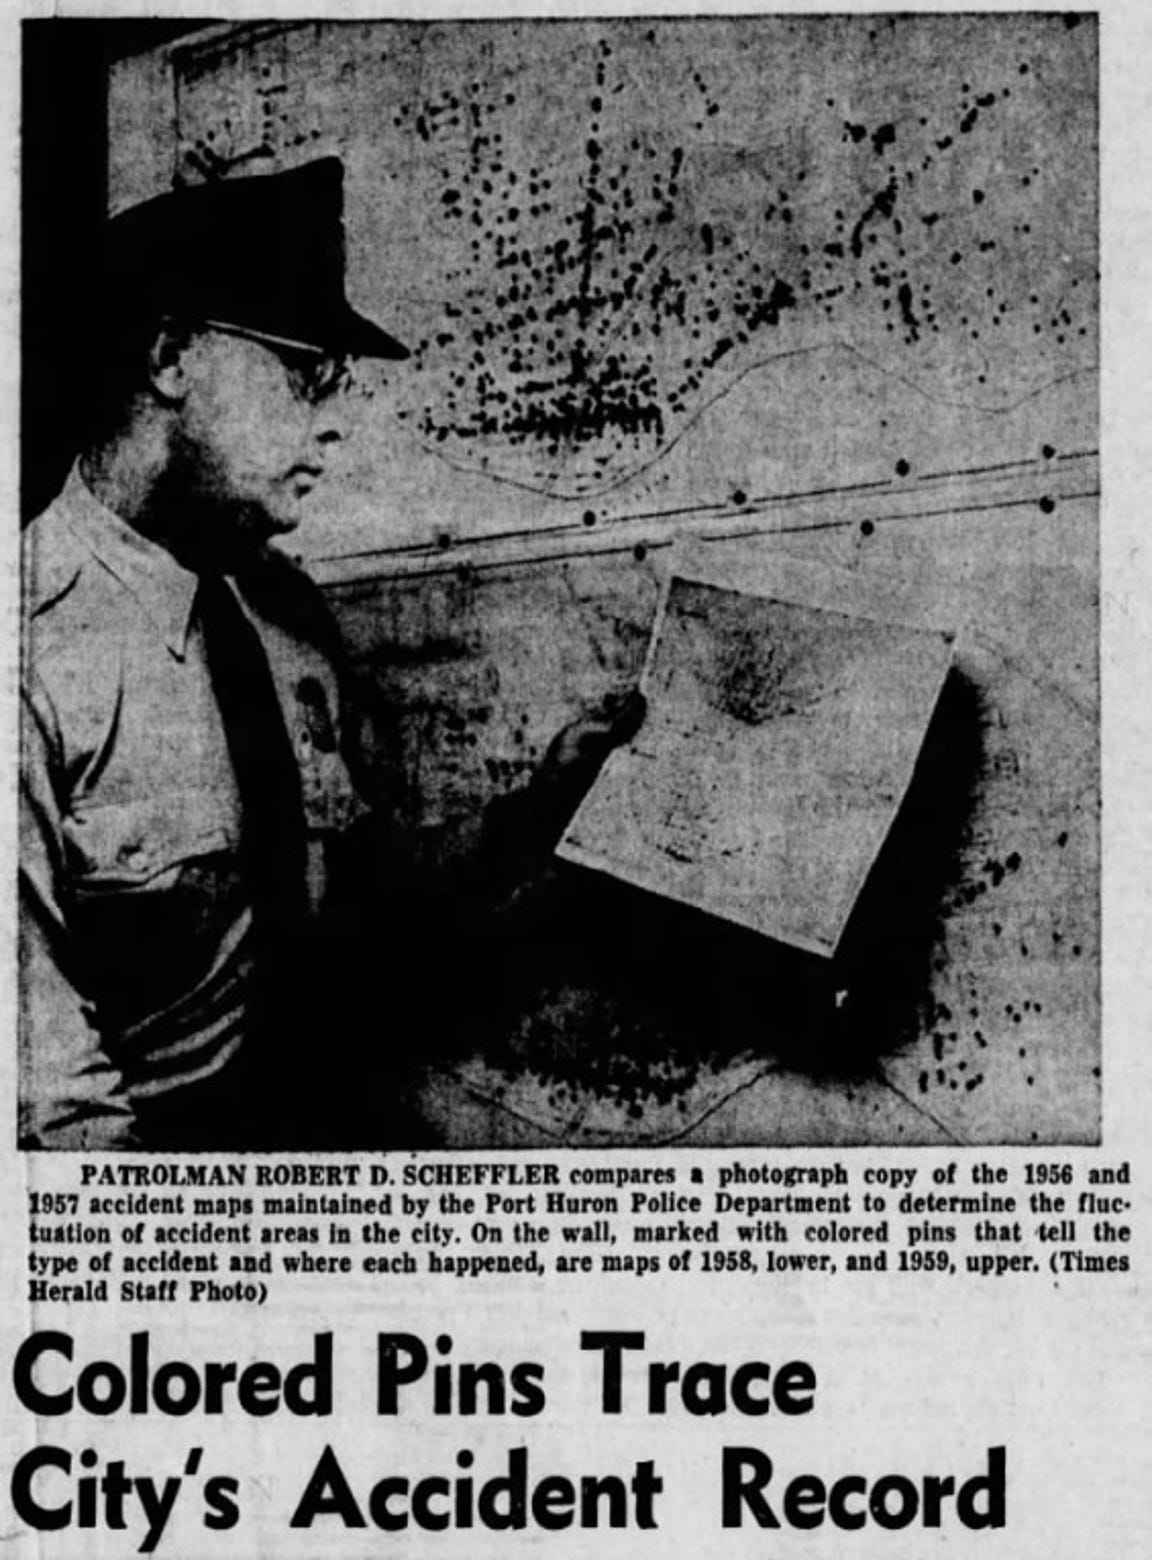 A November 1959 Times Herald clipping shows how colored pins on a map helped the Port Huron's police department track traffic crashes.